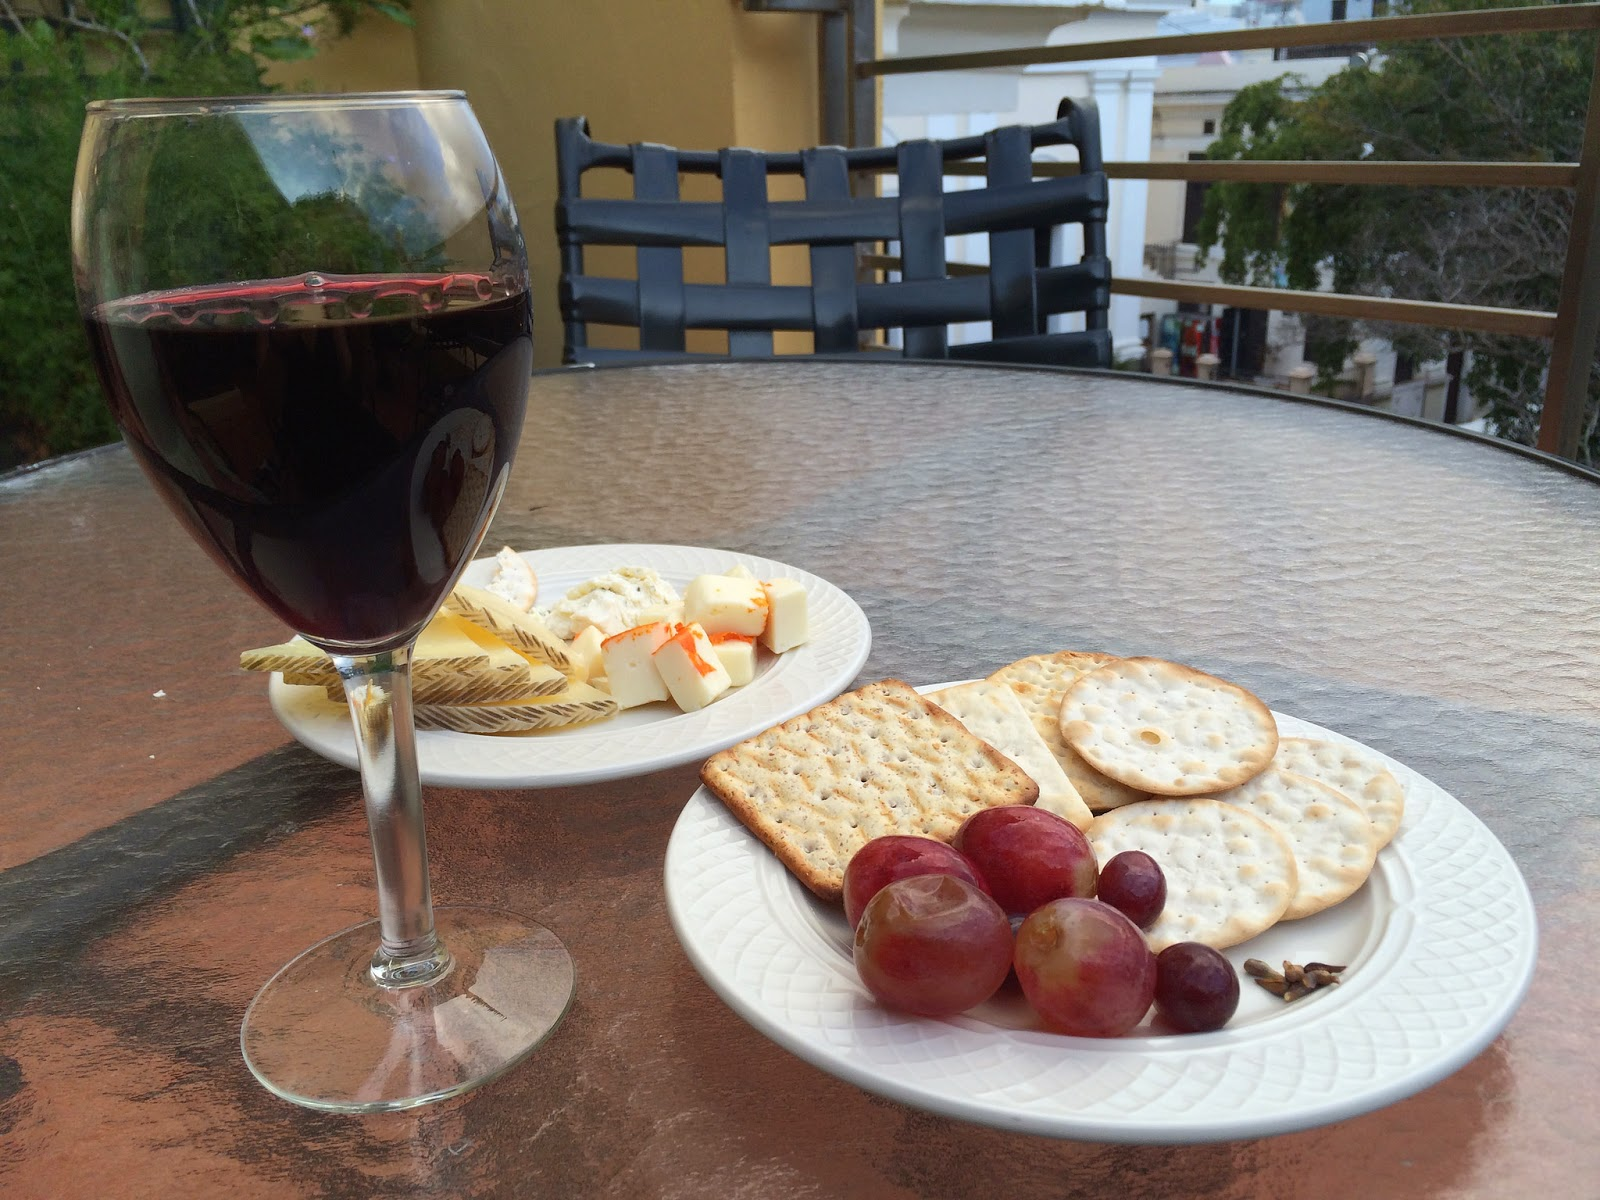 Wine and cheese reception on terrace of El Convento hotel